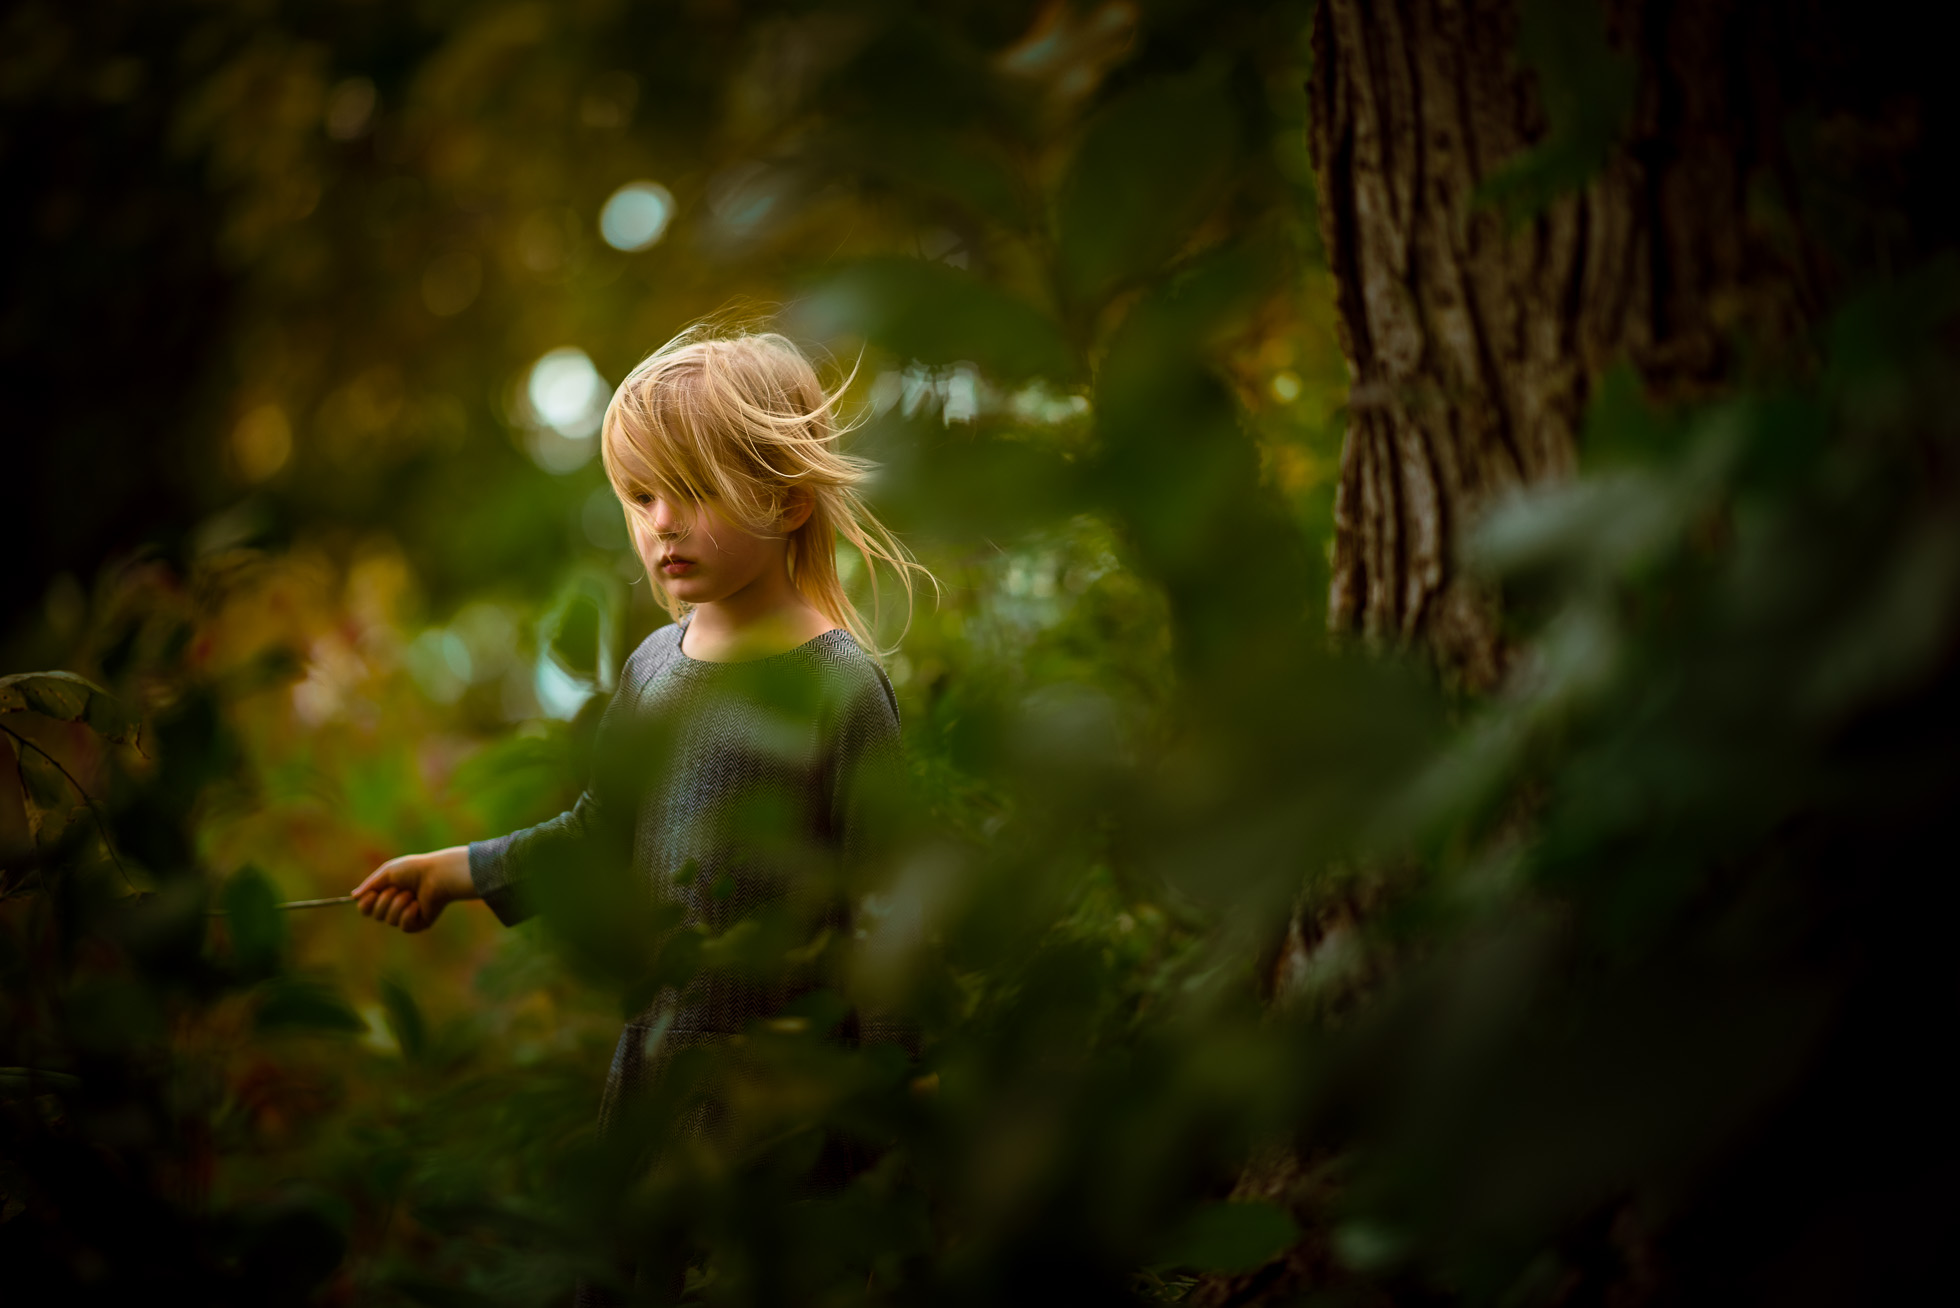 colorful-outdoor-natural-light-photo-of-hair-blowing-in-autumn-breeze-and-little-girl-framed-by-fall-leaves-by-sarah-wilkerson